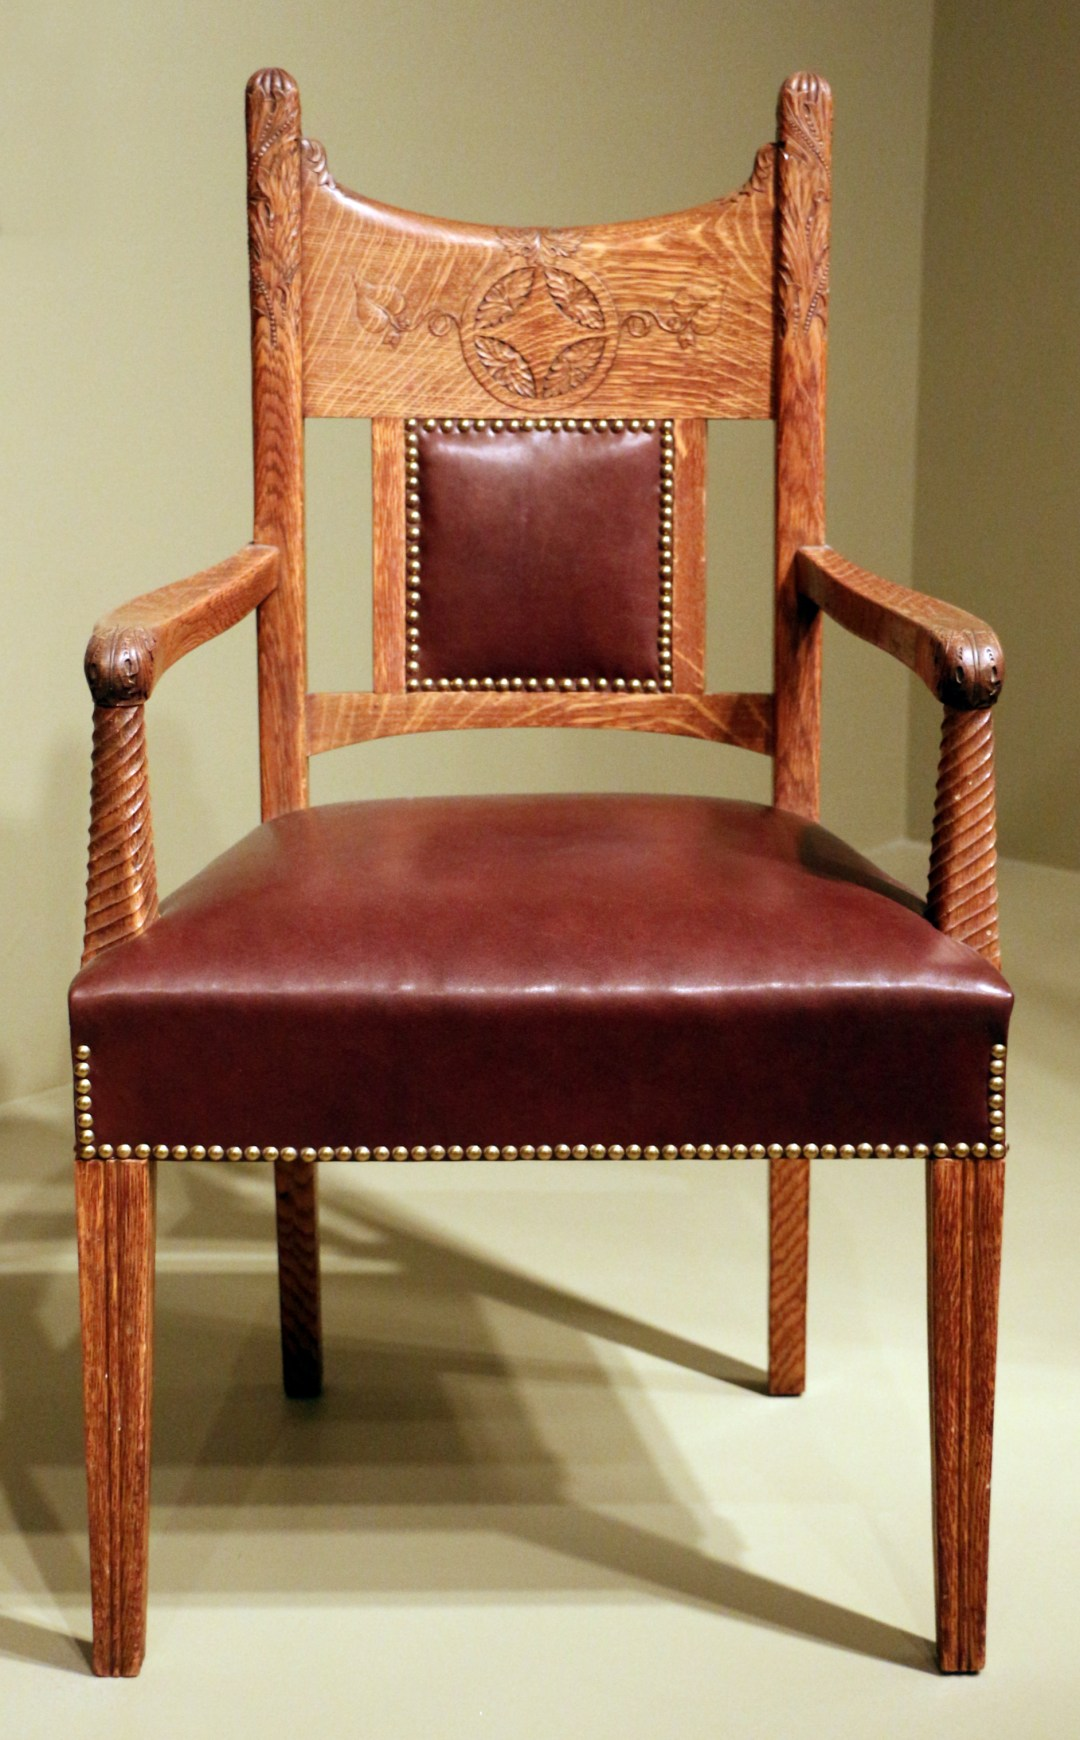 Chair made by A.H. Davenport and attributed to Francis H. Bacon. American Furniture in the Art Institute of Chicago.